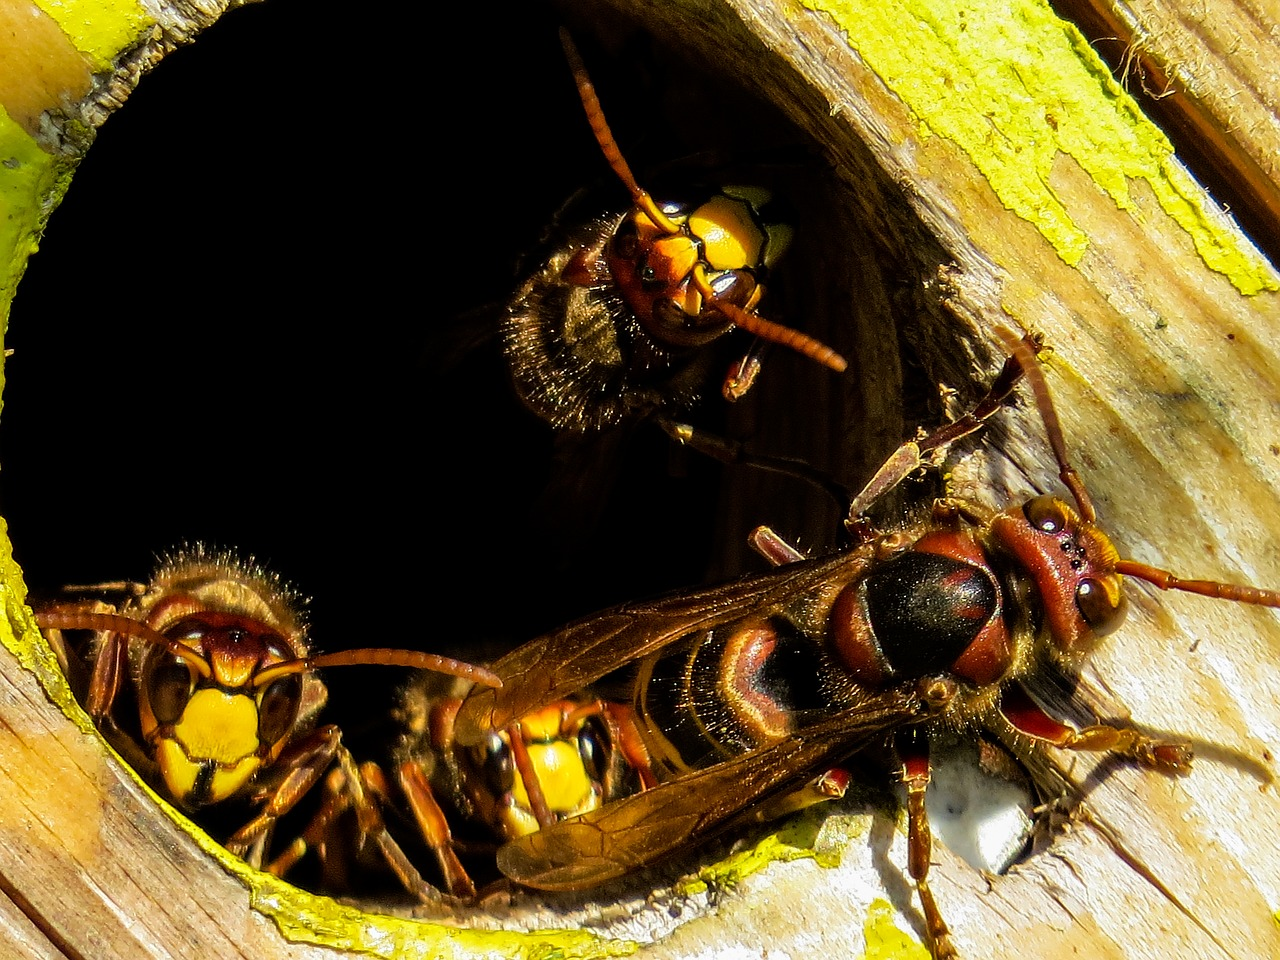 hornets in a block of wood